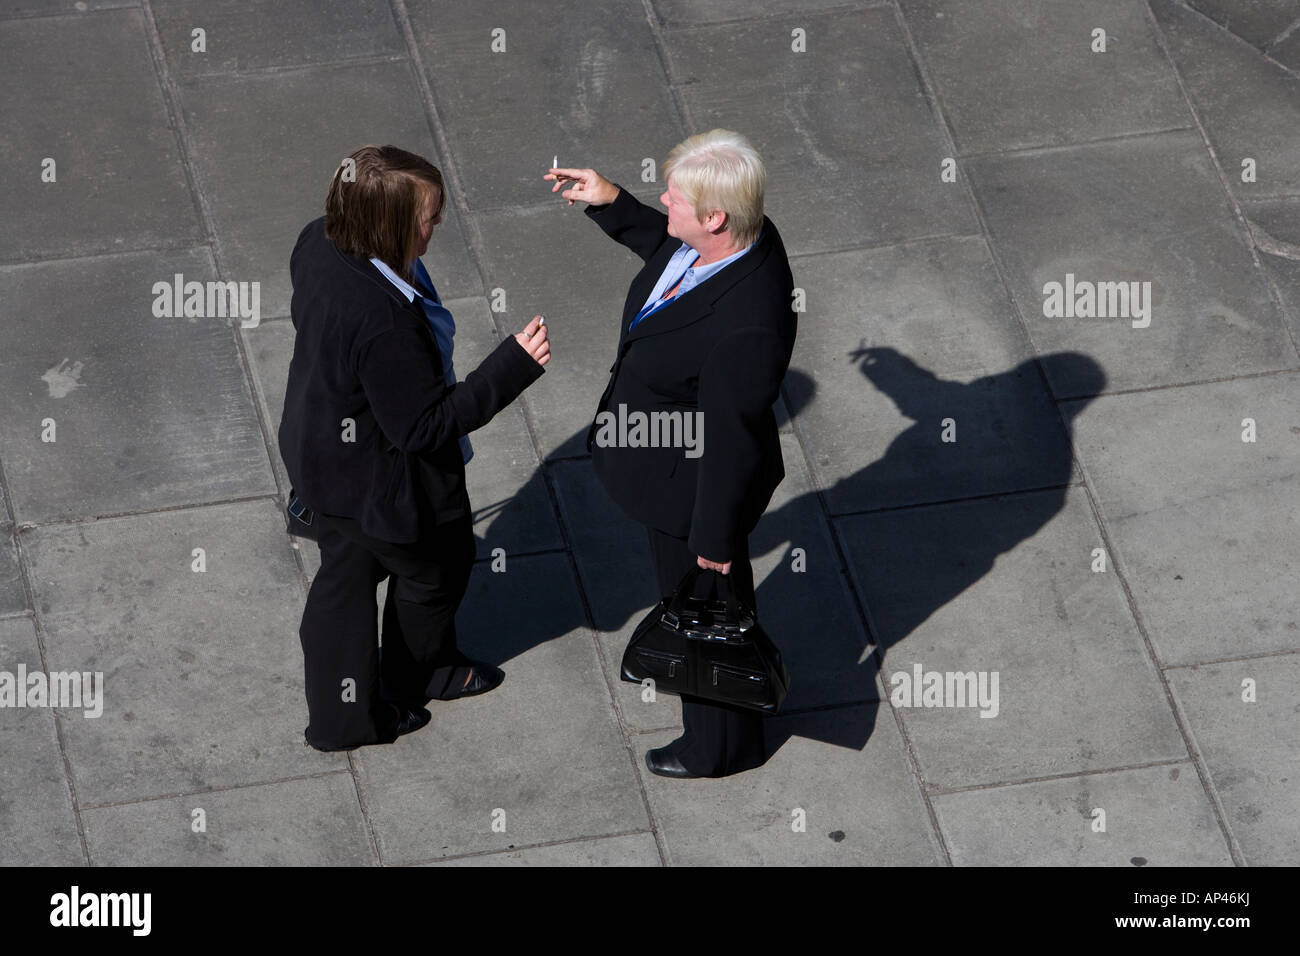 Two Women Dressed In Black Business Suits Talking And Smoking Stock